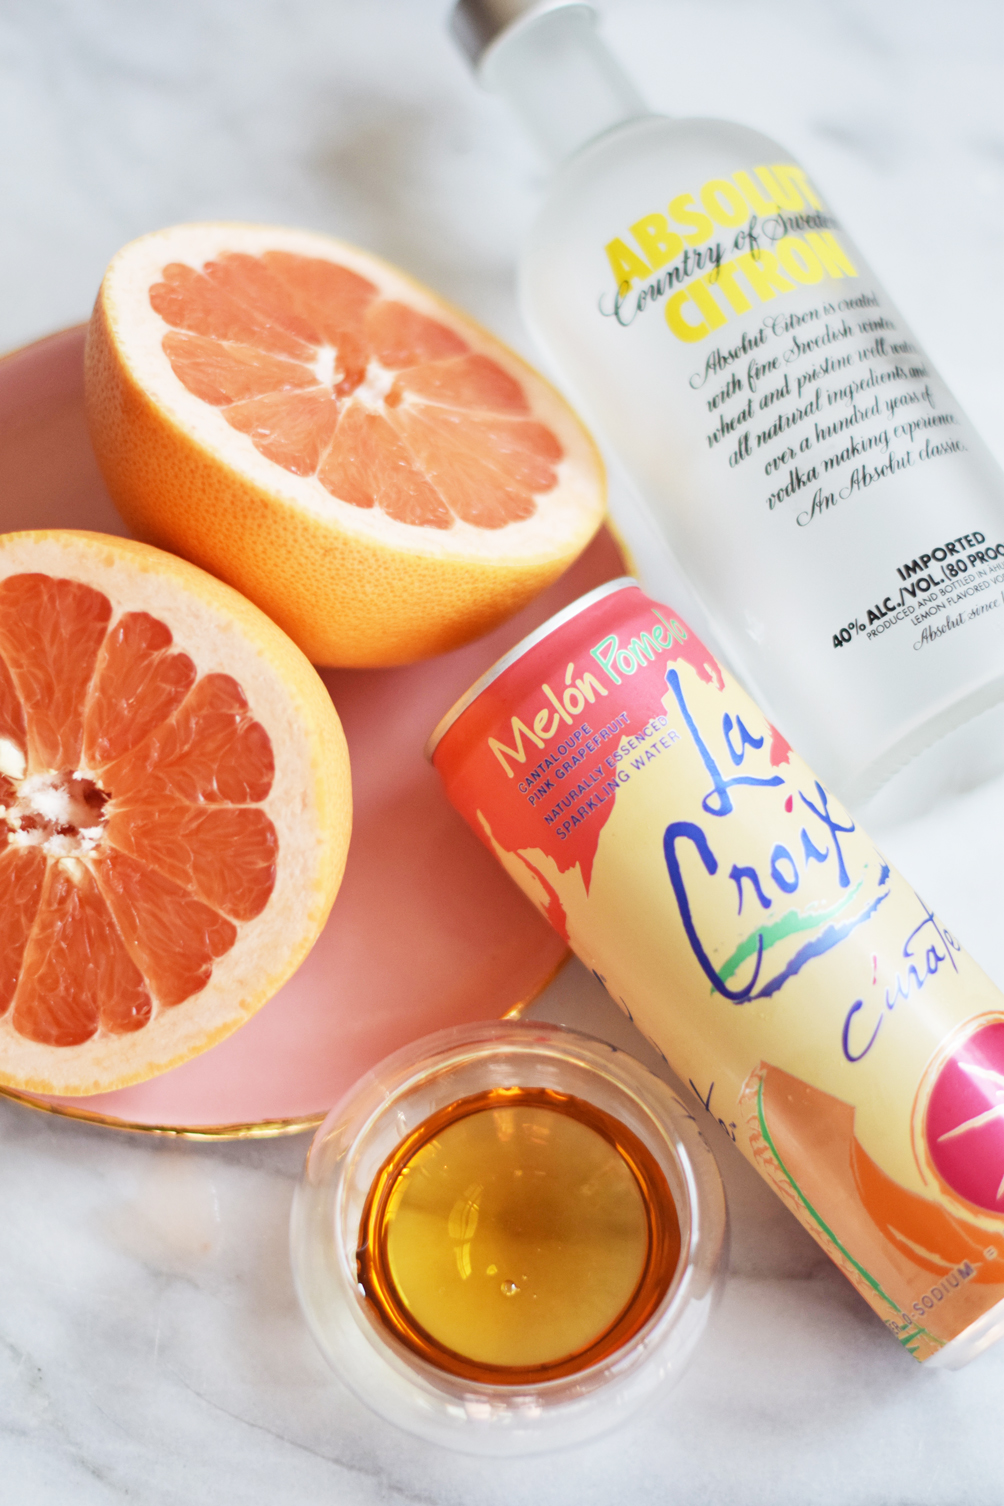 Leslie Musser of one brass fox mixes up the perfect summer drink with this sparkling grapefruit cocktail